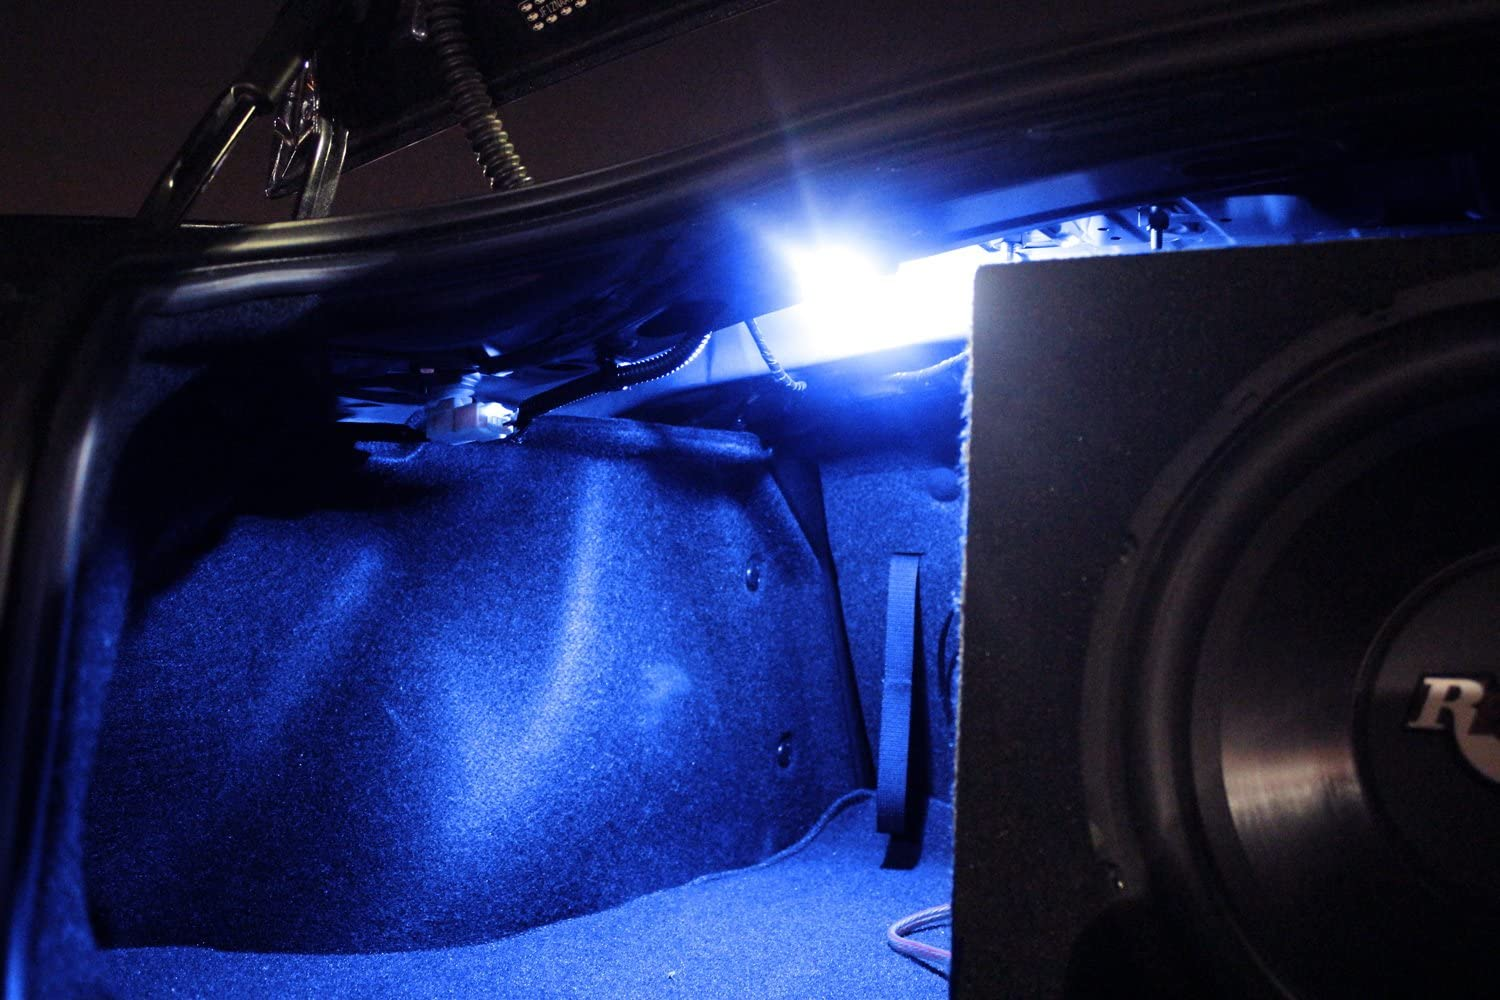 iJDMTOY 18-SMD-5050 LED Strip Light Compatible With Car Trunk Cargo Area or Interior Illumination Ice Blue 1